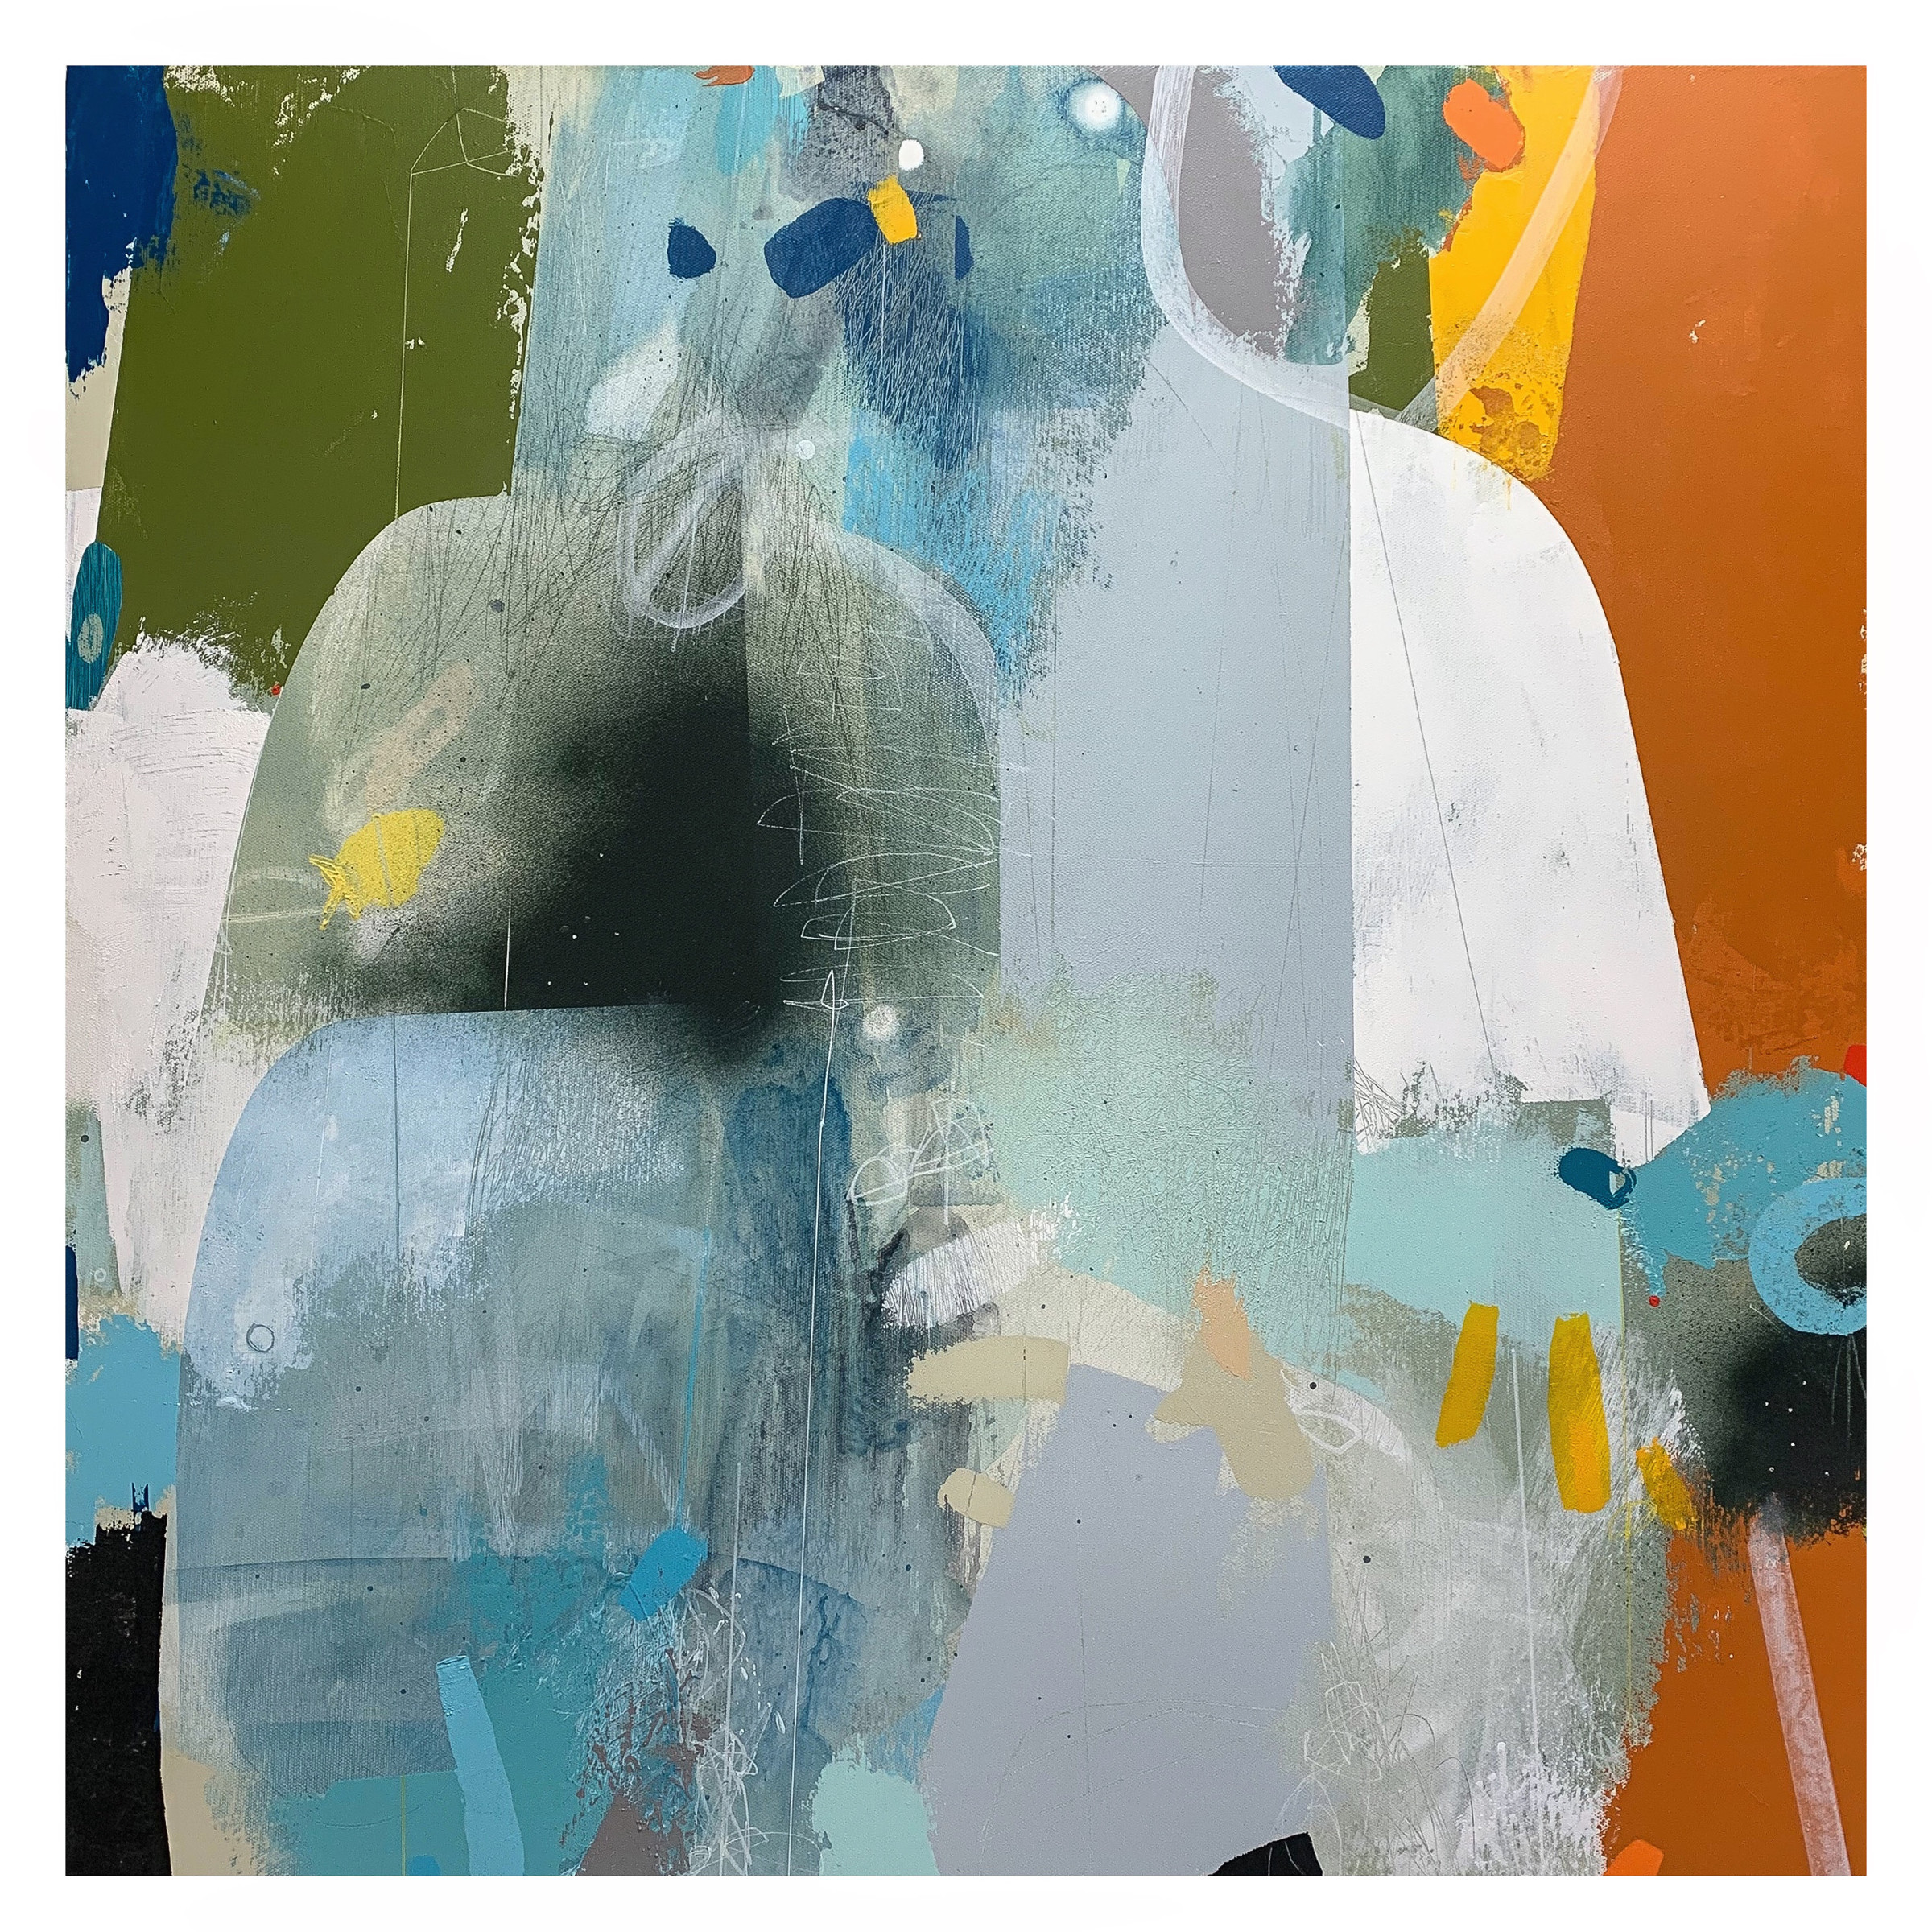 """<span class=""""link fancybox-details-link""""><a href=""""/artists/77-andrew-bird/works/7027-andrew-bird-twice-one-2020/"""">View Detail Page</a></span><div class=""""artist""""><strong>Andrew Bird</strong></div> <div class=""""title""""><em>Twice One</em>, 2020</div> <div class=""""signed_and_dated"""">signed and titled on reverse</div> <div class=""""medium"""">acrylic on canvas</div> <div class=""""dimensions"""">h. 76 x w. 76 cm</div><div class=""""price"""">£2,500.00</div>"""